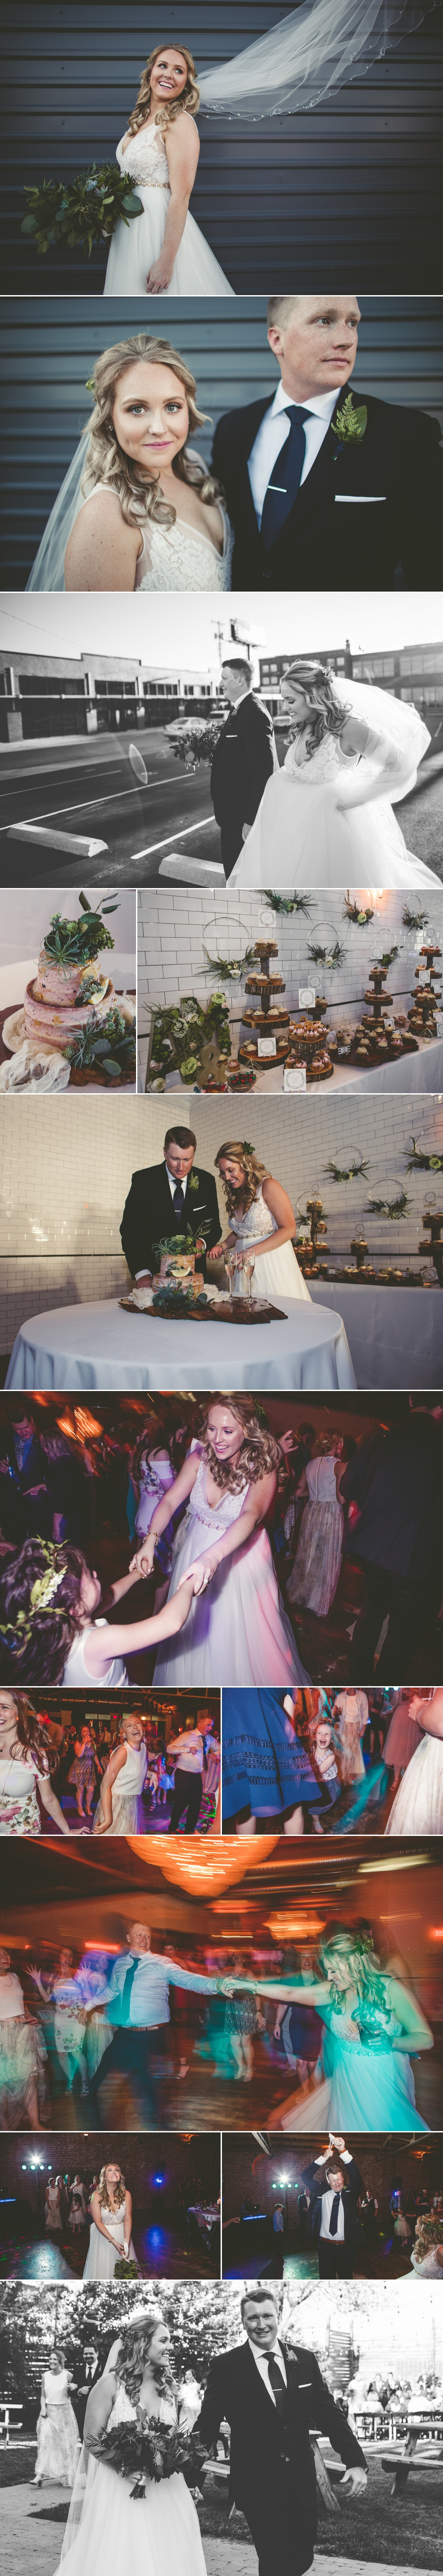 jason_domingues_photography_best_kansas_city_wedding_photographer_kc_weddings_the_guild0003